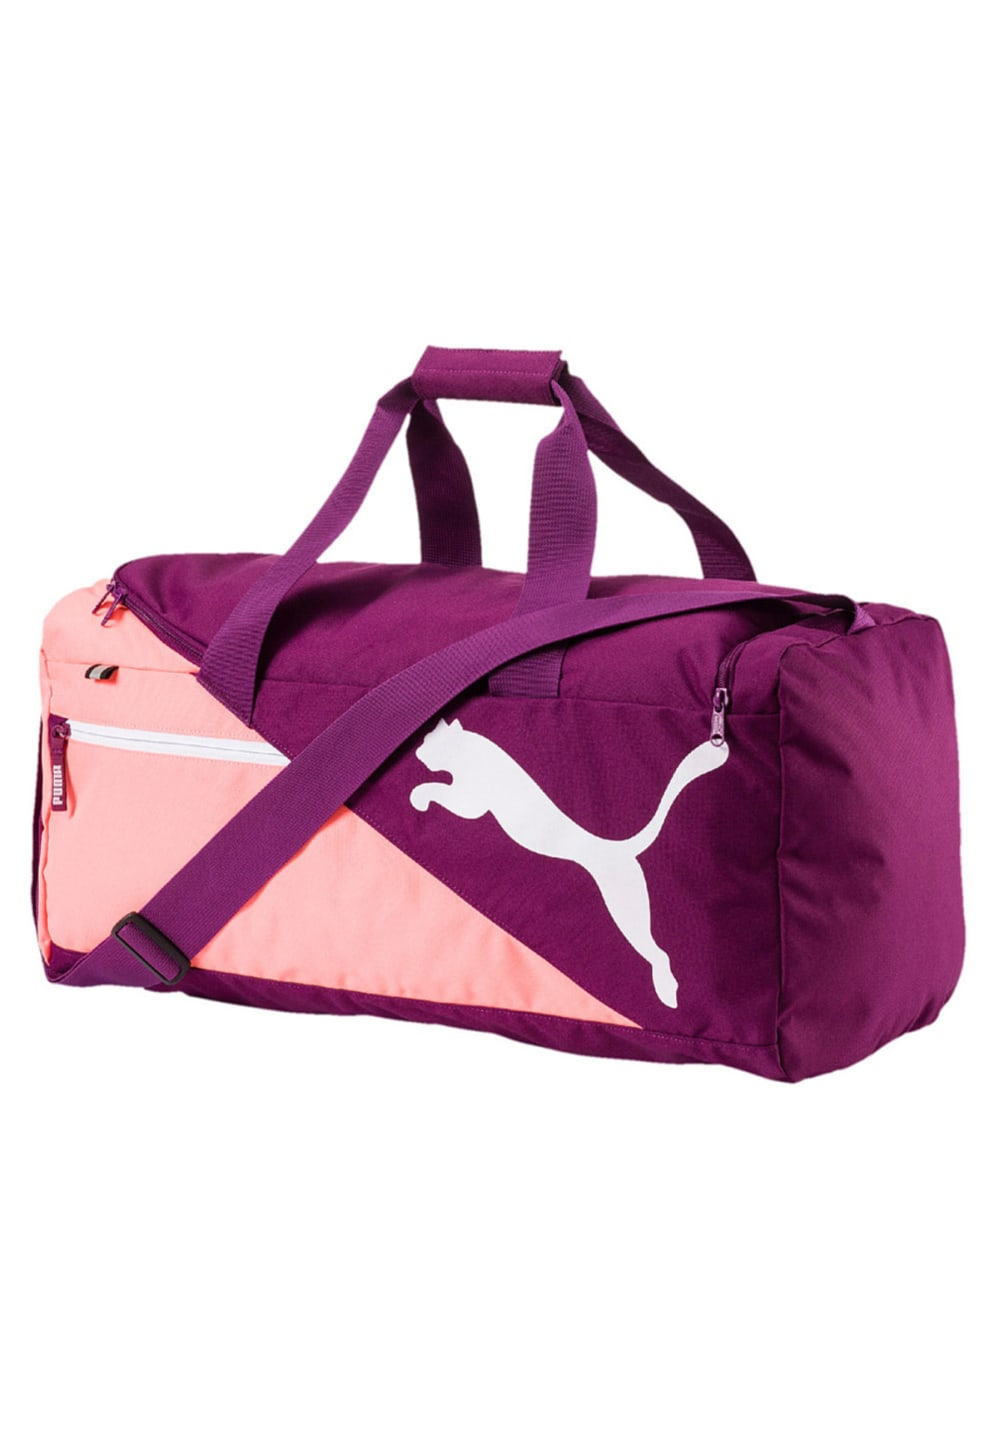 Puma Fundamentals Sports Bag M - Sporttaschen - Lila